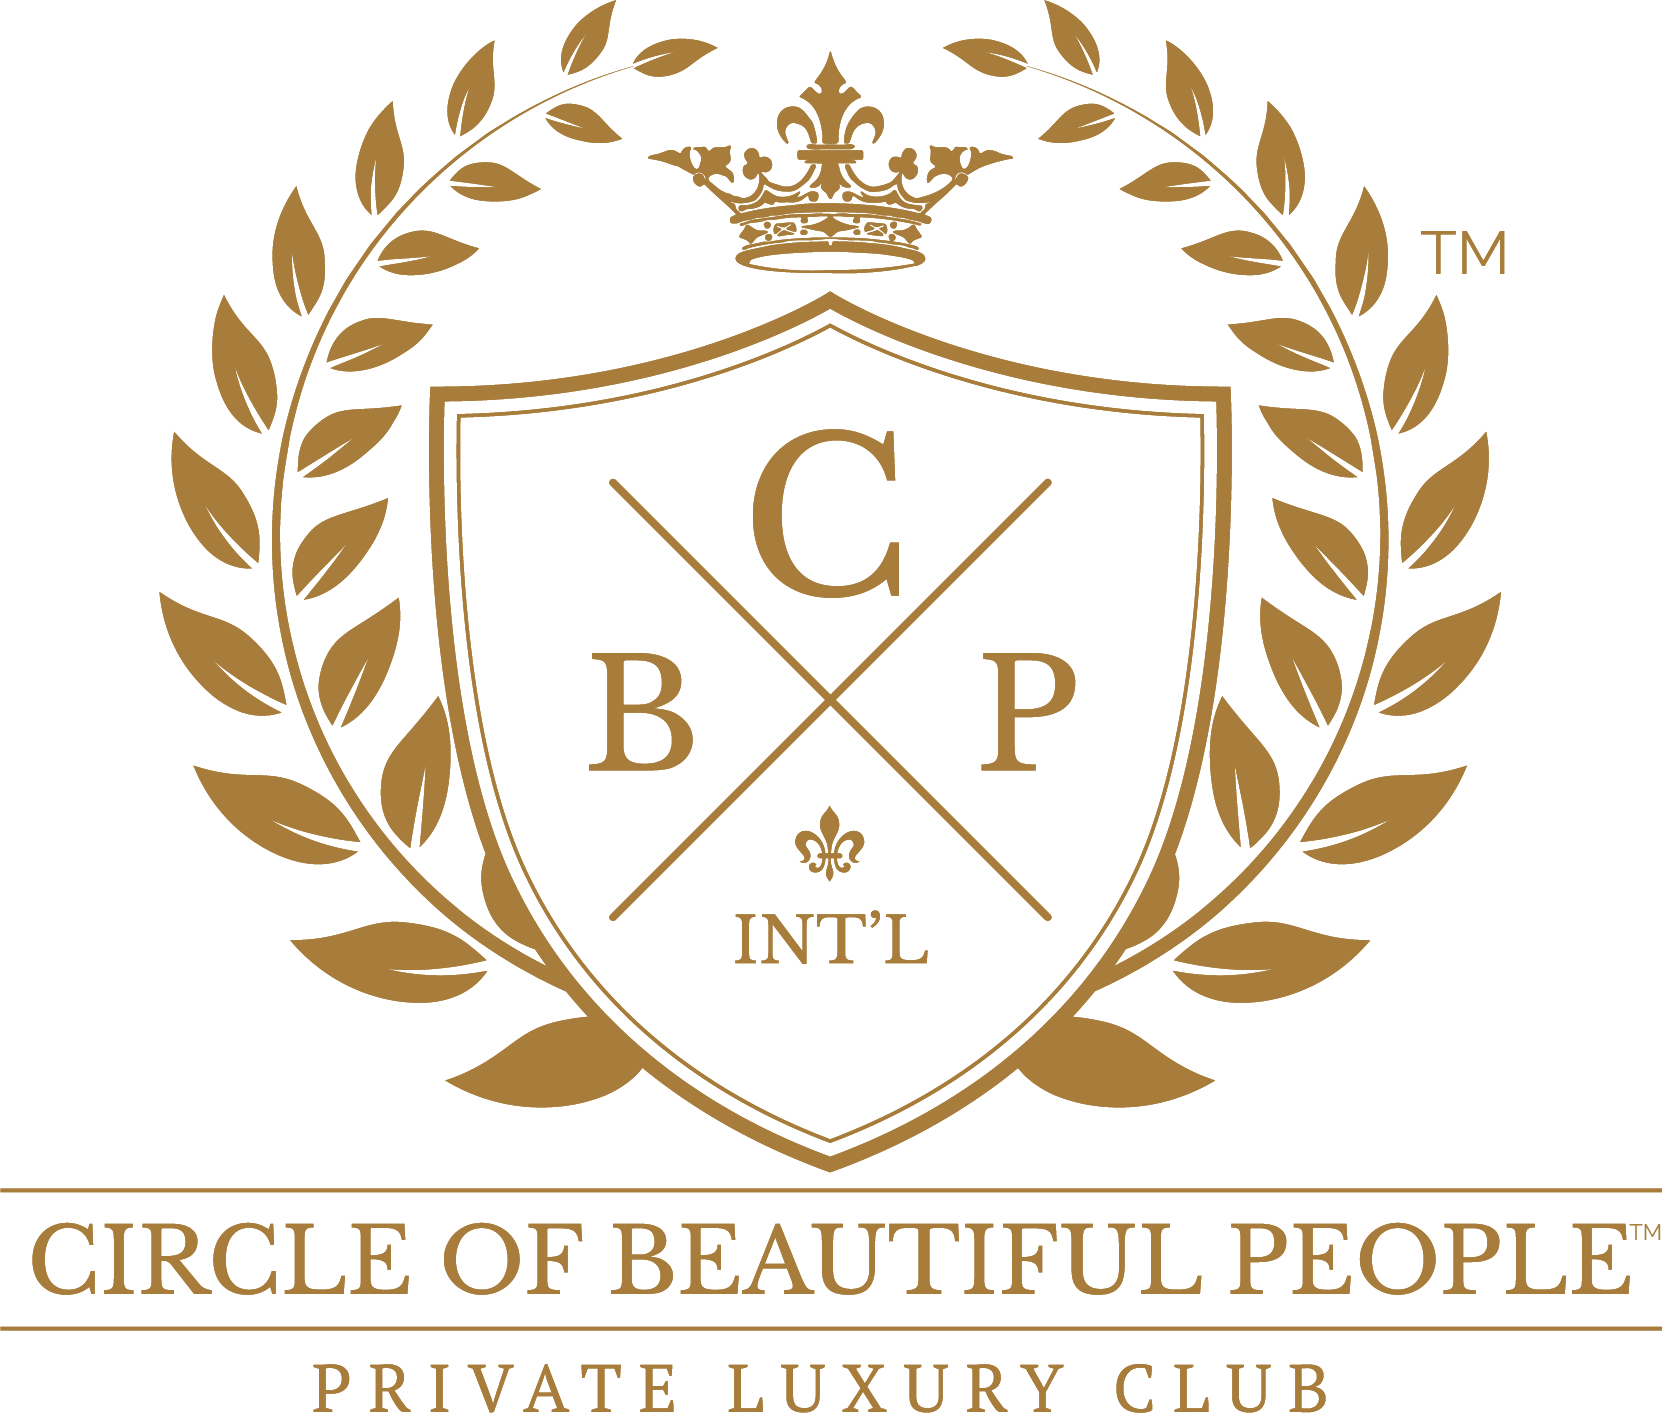 Circle of Beautiful People International(TM) Corp.